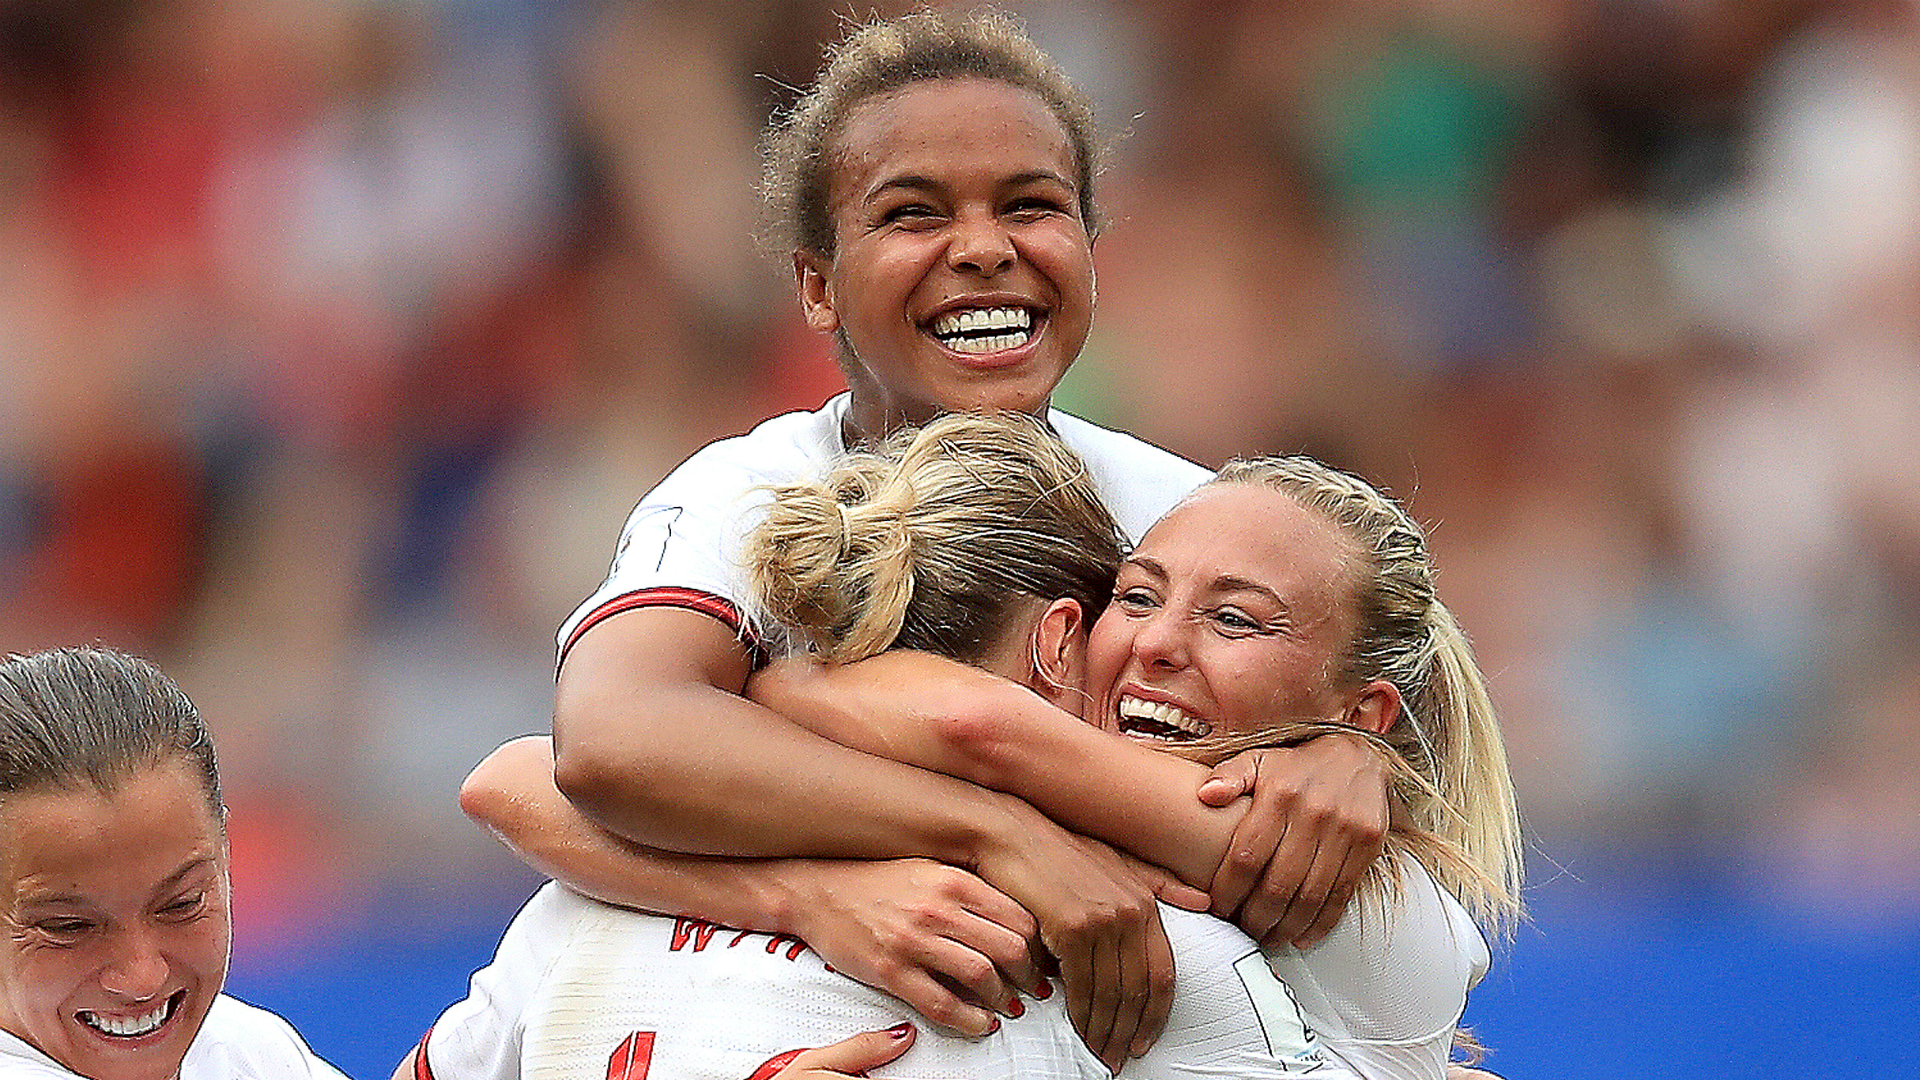 Women's World Cup 2019: England advances as Cameroon outraged by referee calls